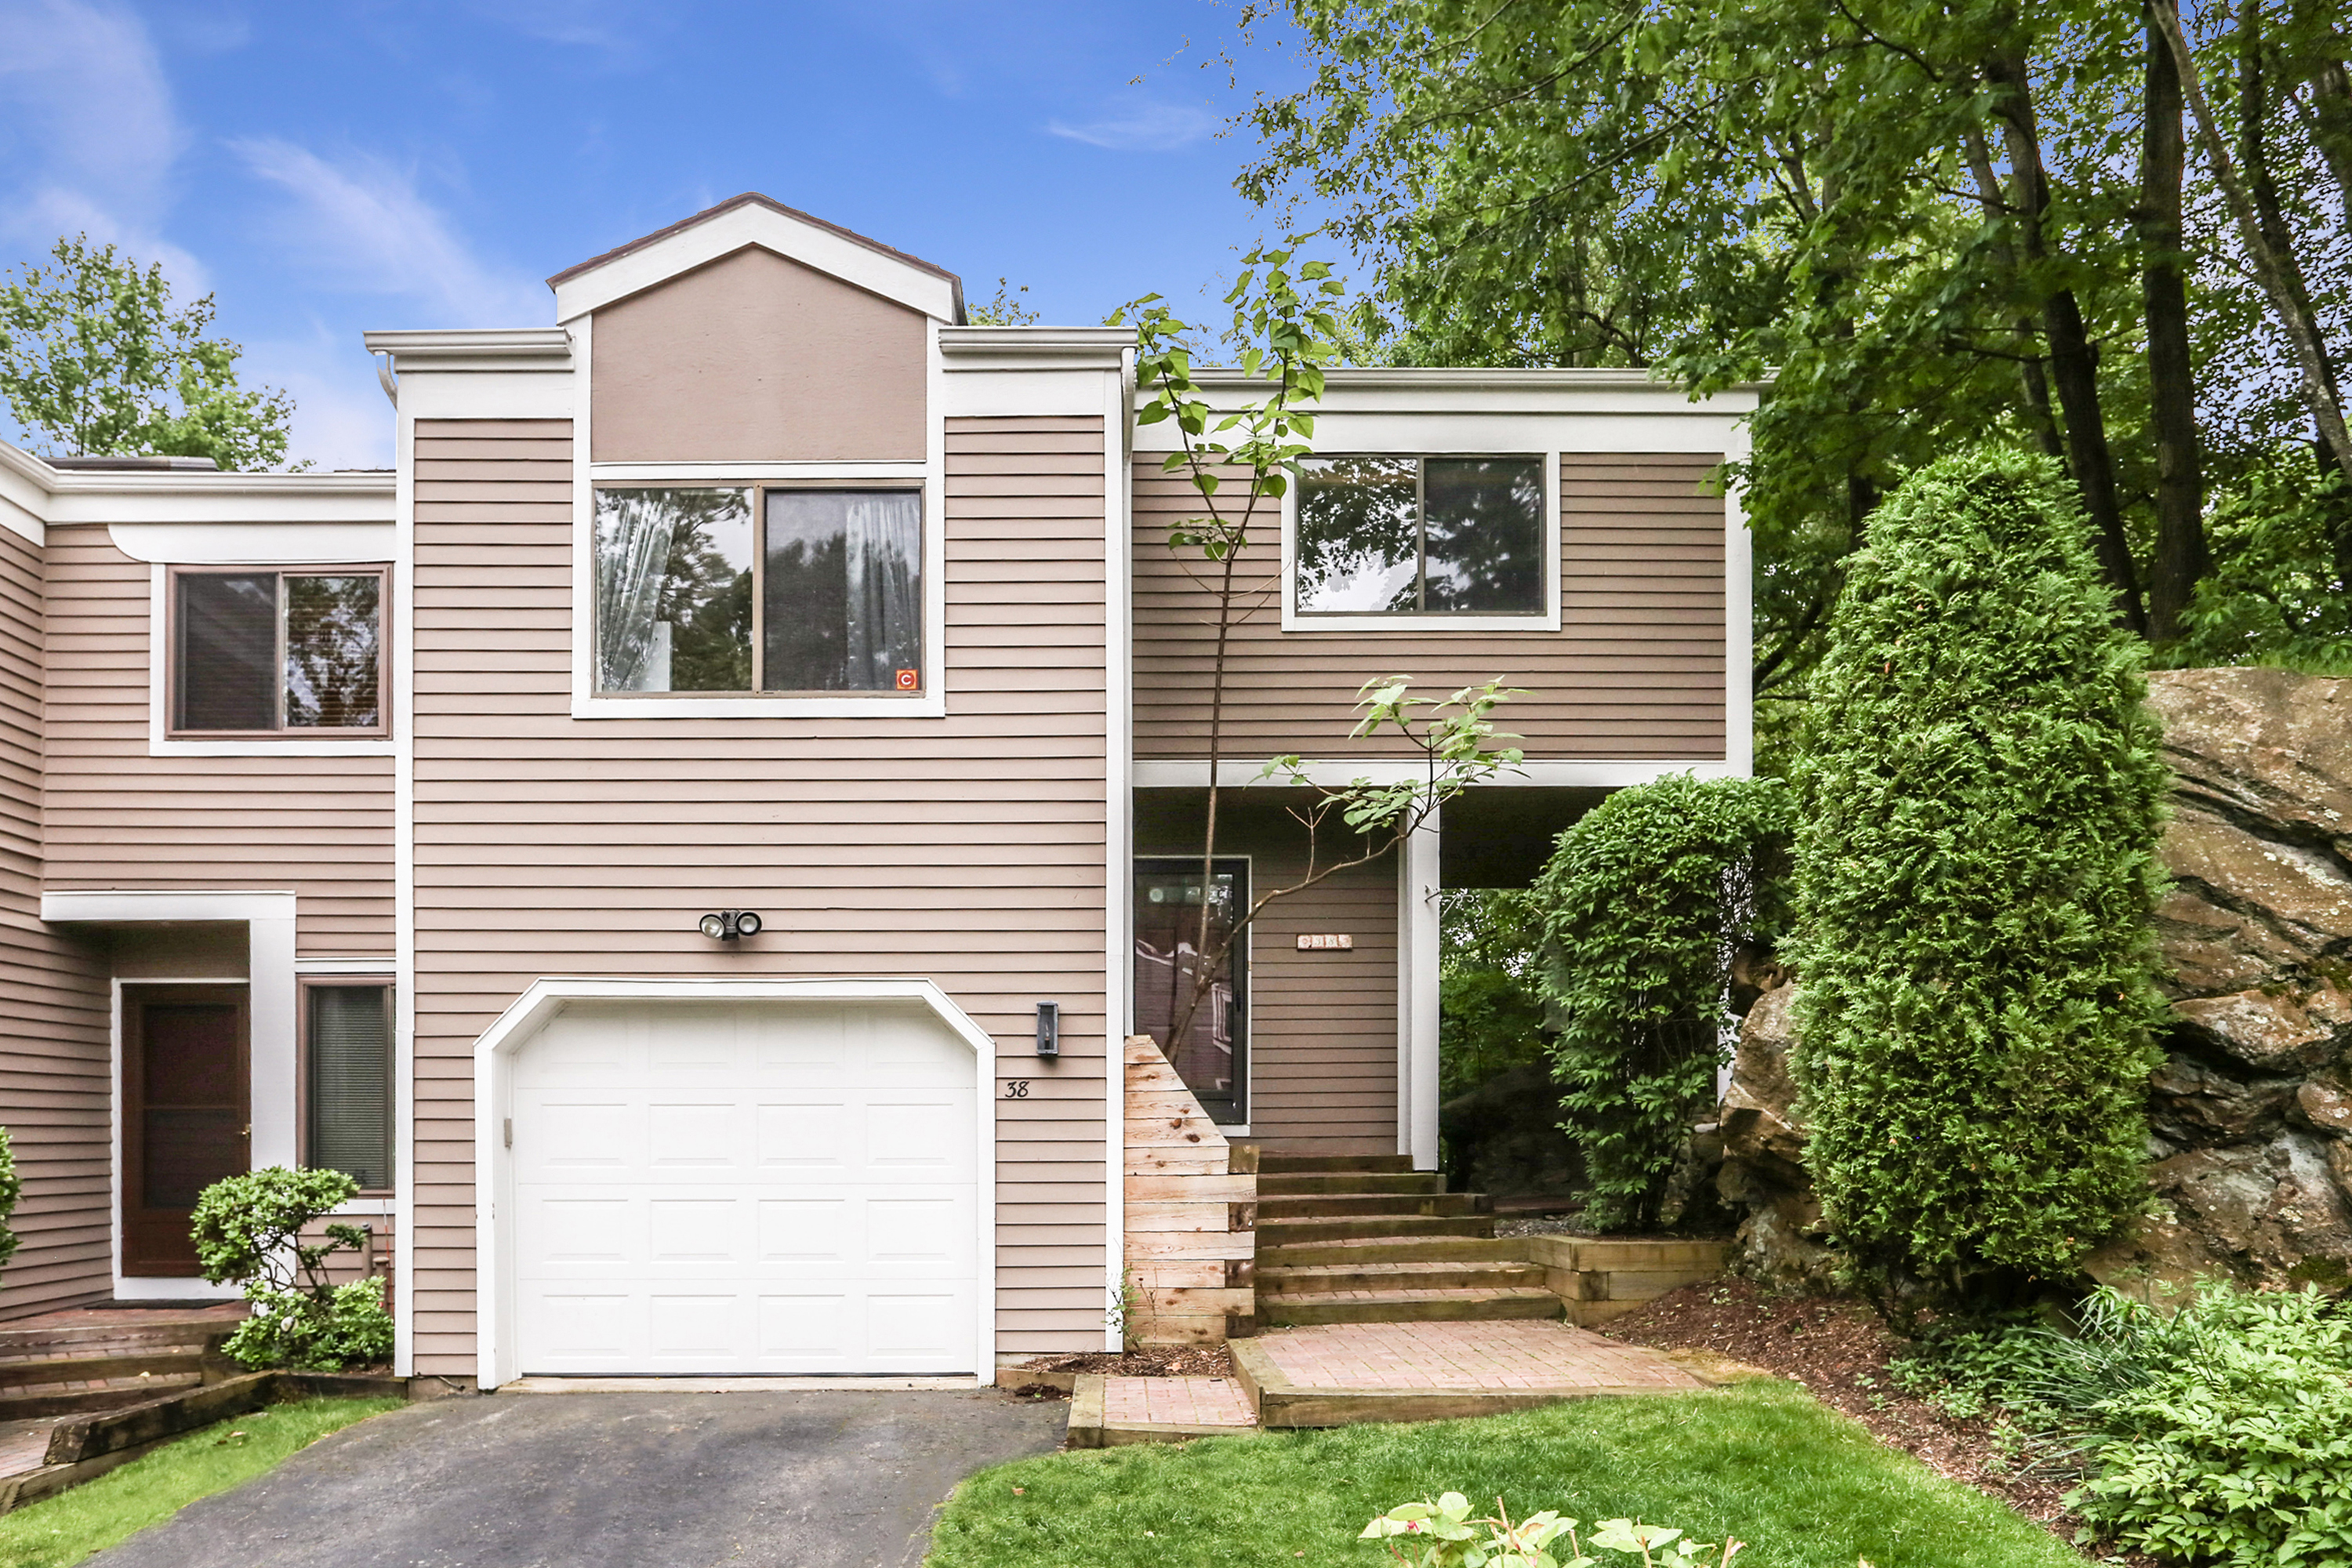 Townhouse/Row House for sale in 38 Top Of The Ridge, Mamaroneck, NY ,10543